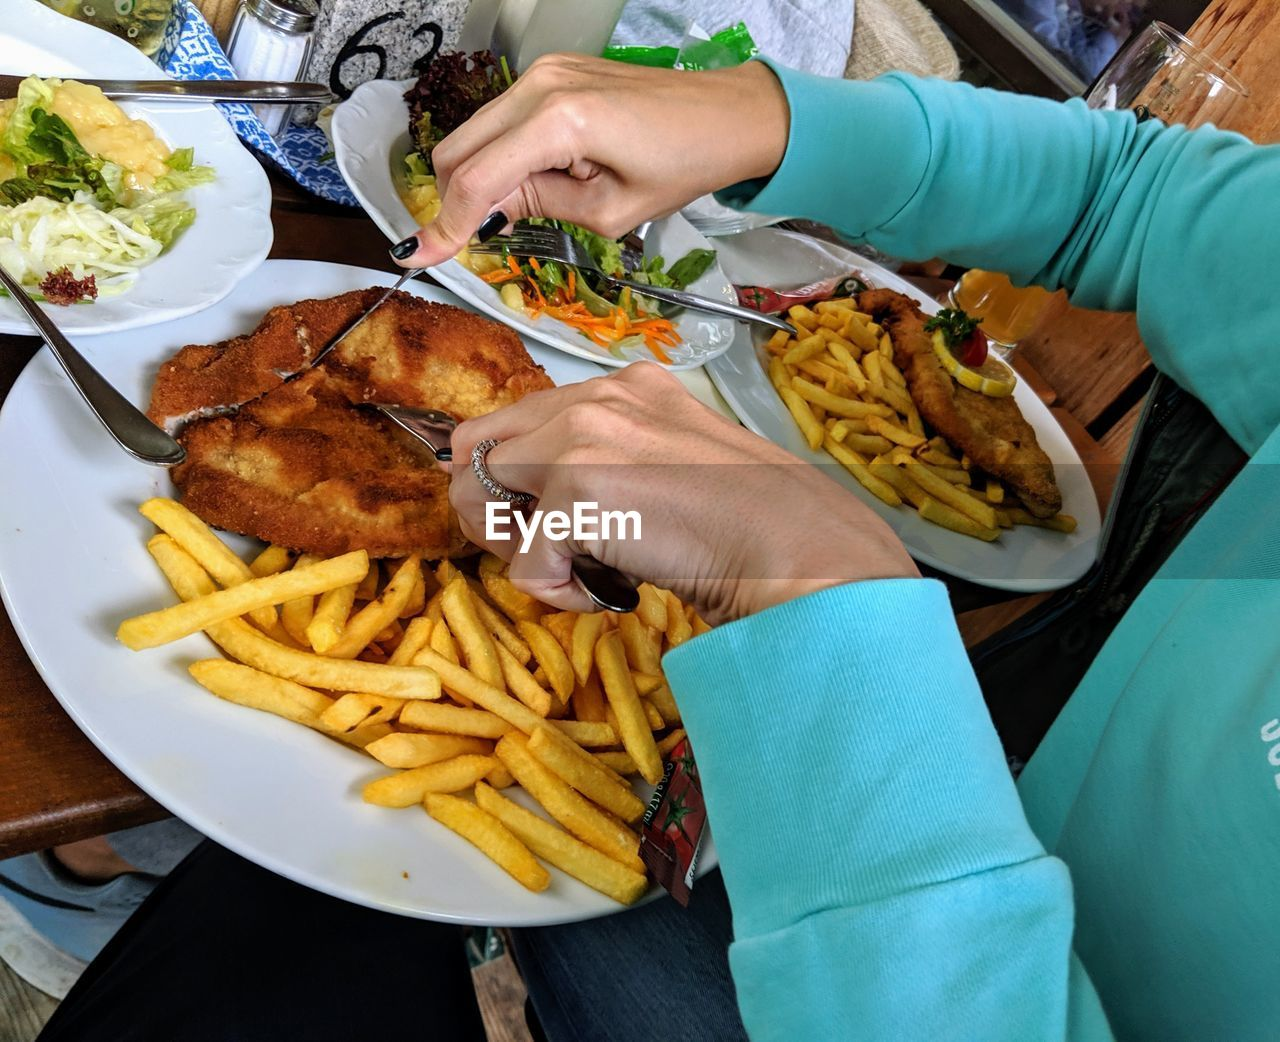 HIGH ANGLE VIEW OF MAN HOLDING FOOD